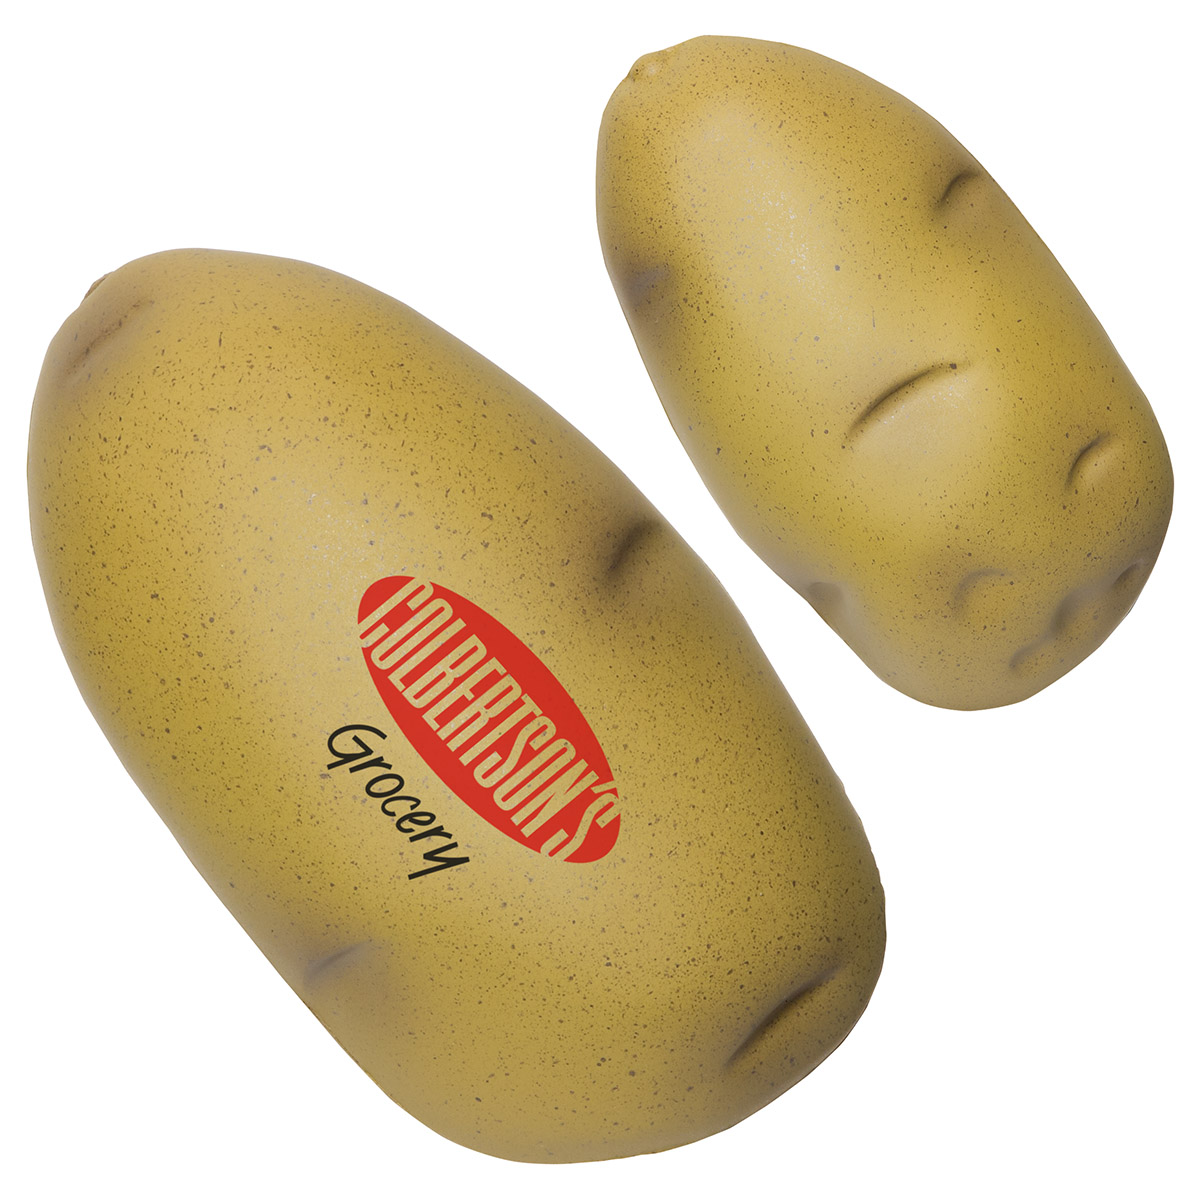 Potato Stress Reliever, LVG-PT08, 1 Colour Imprint